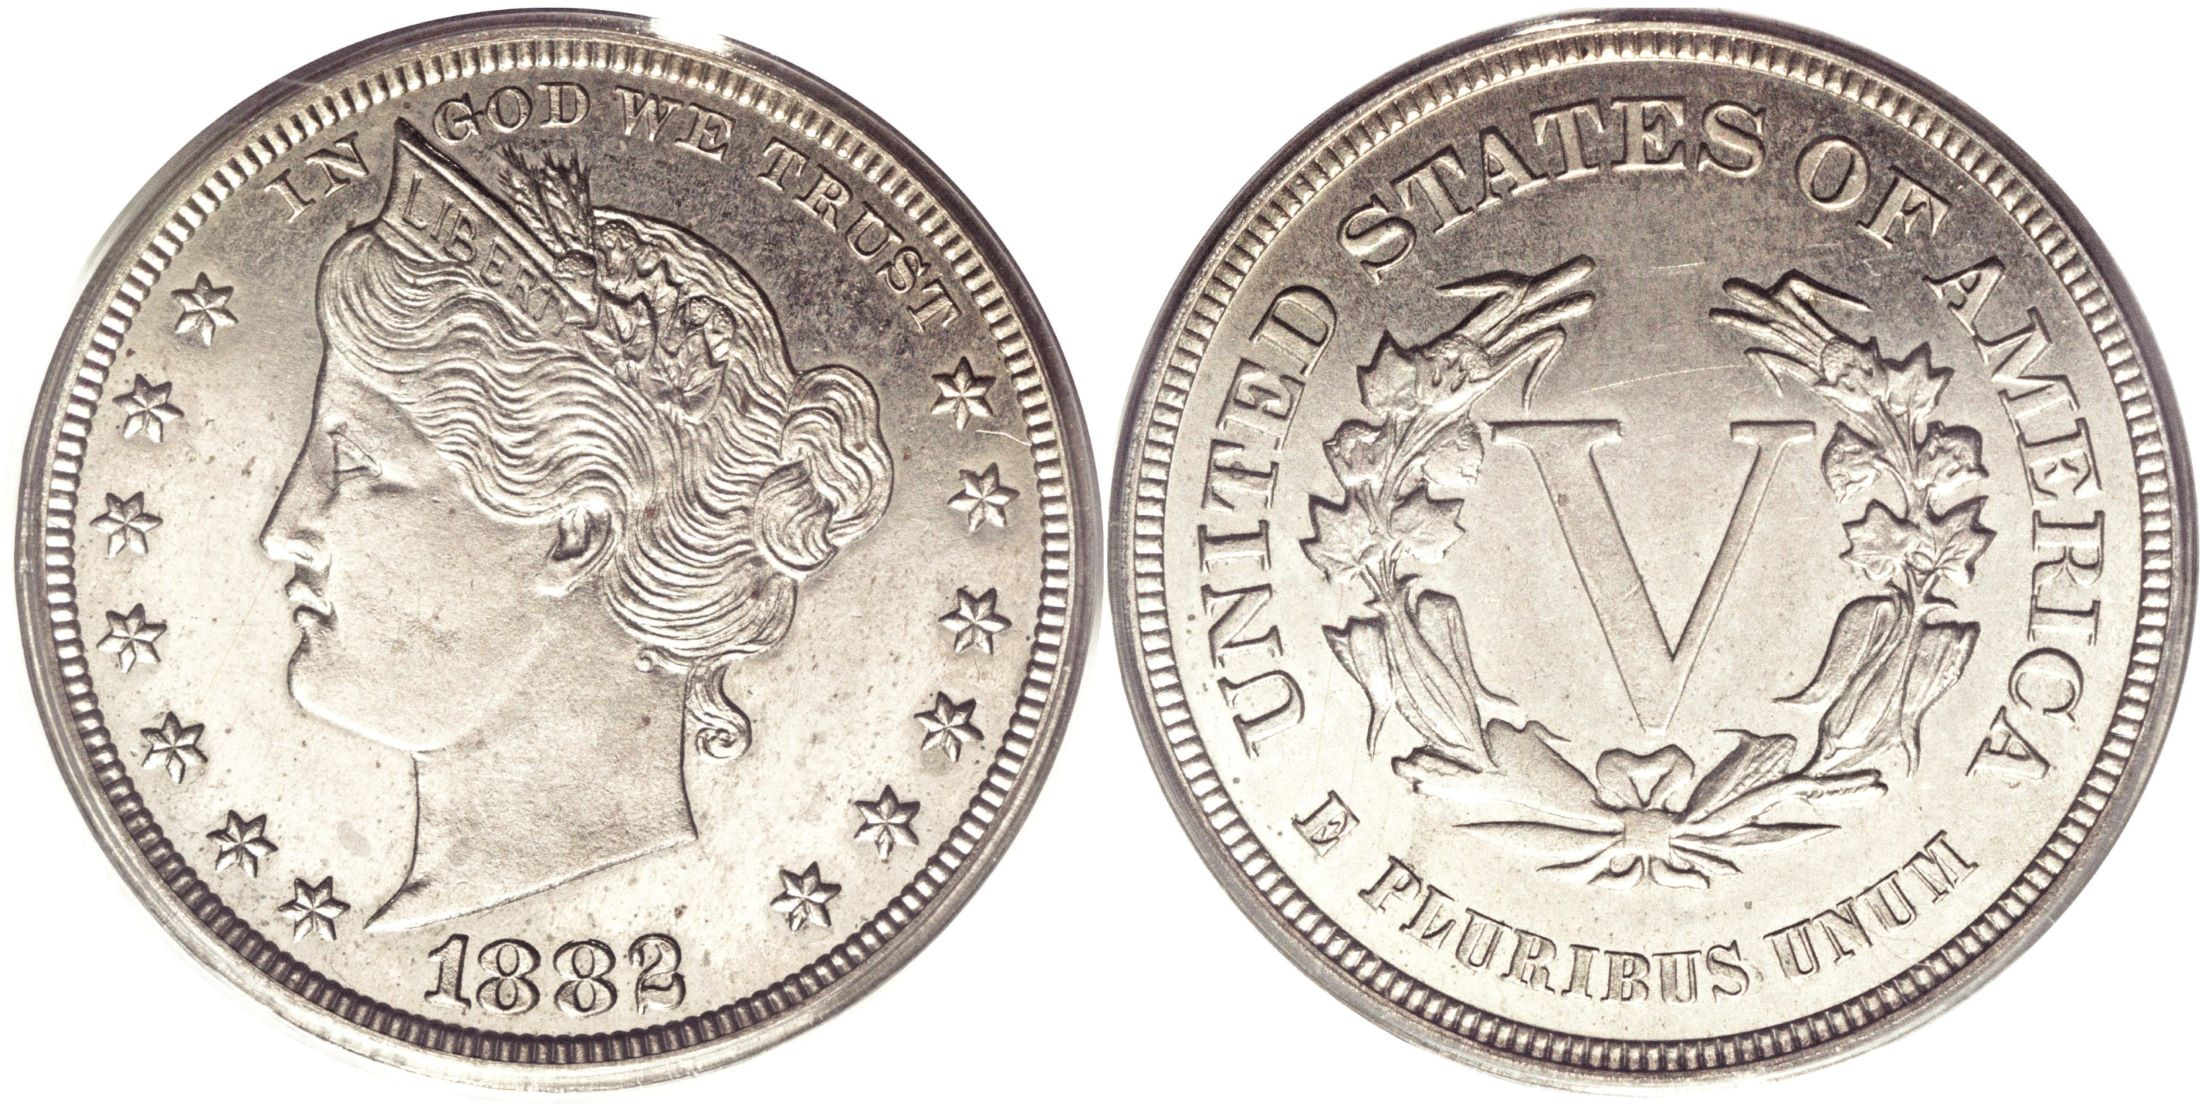 """PCGS PR63<BR>Image courtesy of <a href=""""http://www.ha.com"""" target=""""_blank"""">Heritage Numismatic Auctions</a>"""